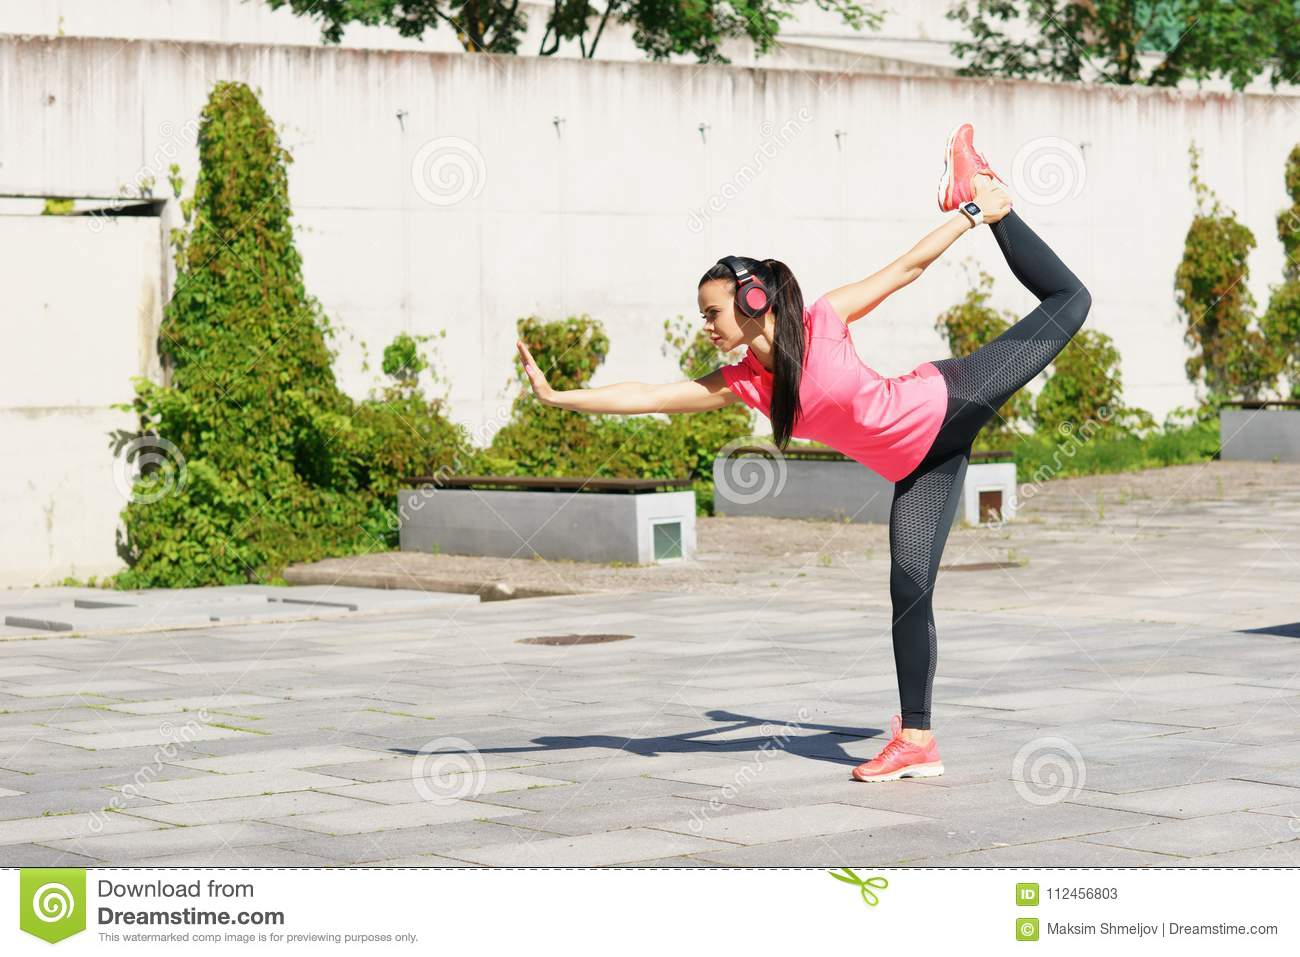 Young, fit and sporty woman doing yoga exercise outdoor. Fitness, sport, urban and healthy lifestyle concept.